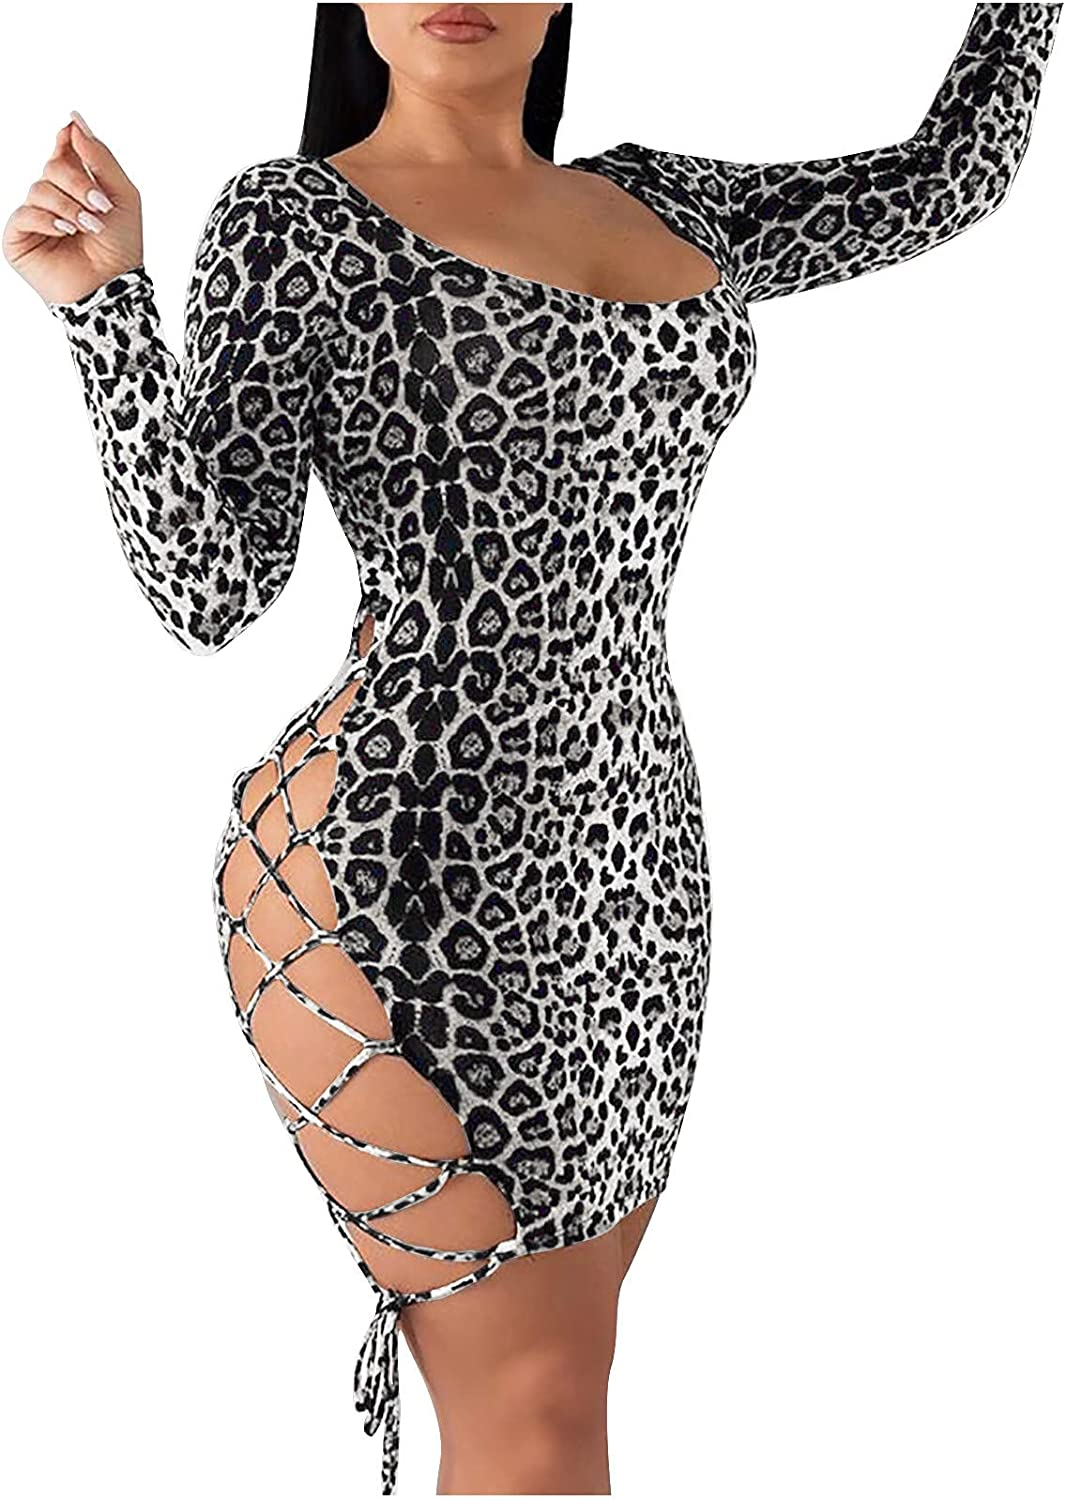 Leopard Print Dresses for Women Backless Lace up Dress Sequin Club Party Dress Club Night Bodycon Long Sleeve Dress